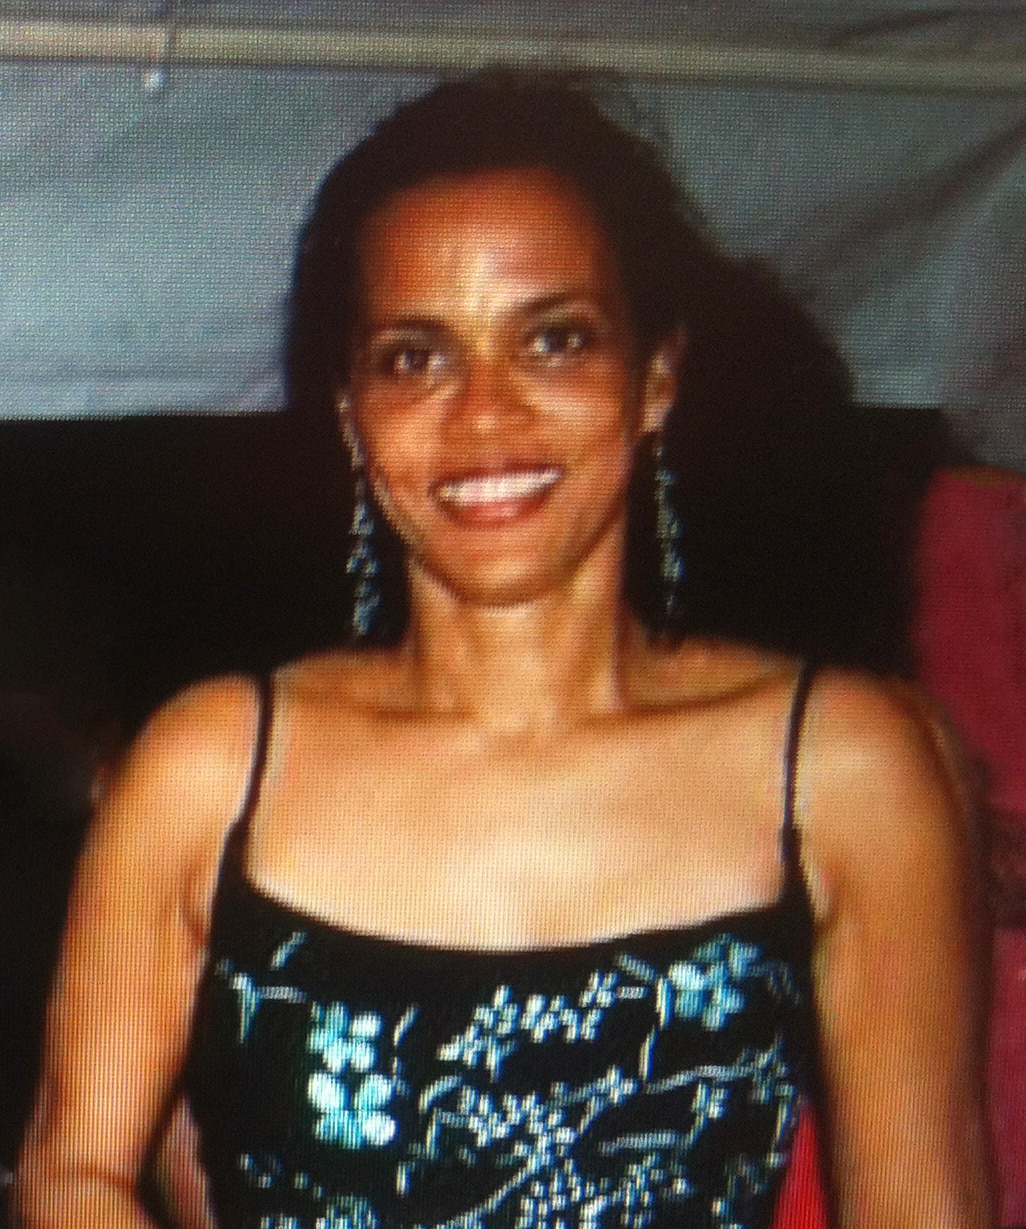 Wendy-Liz From Goodwood, Trinidad and Tobago